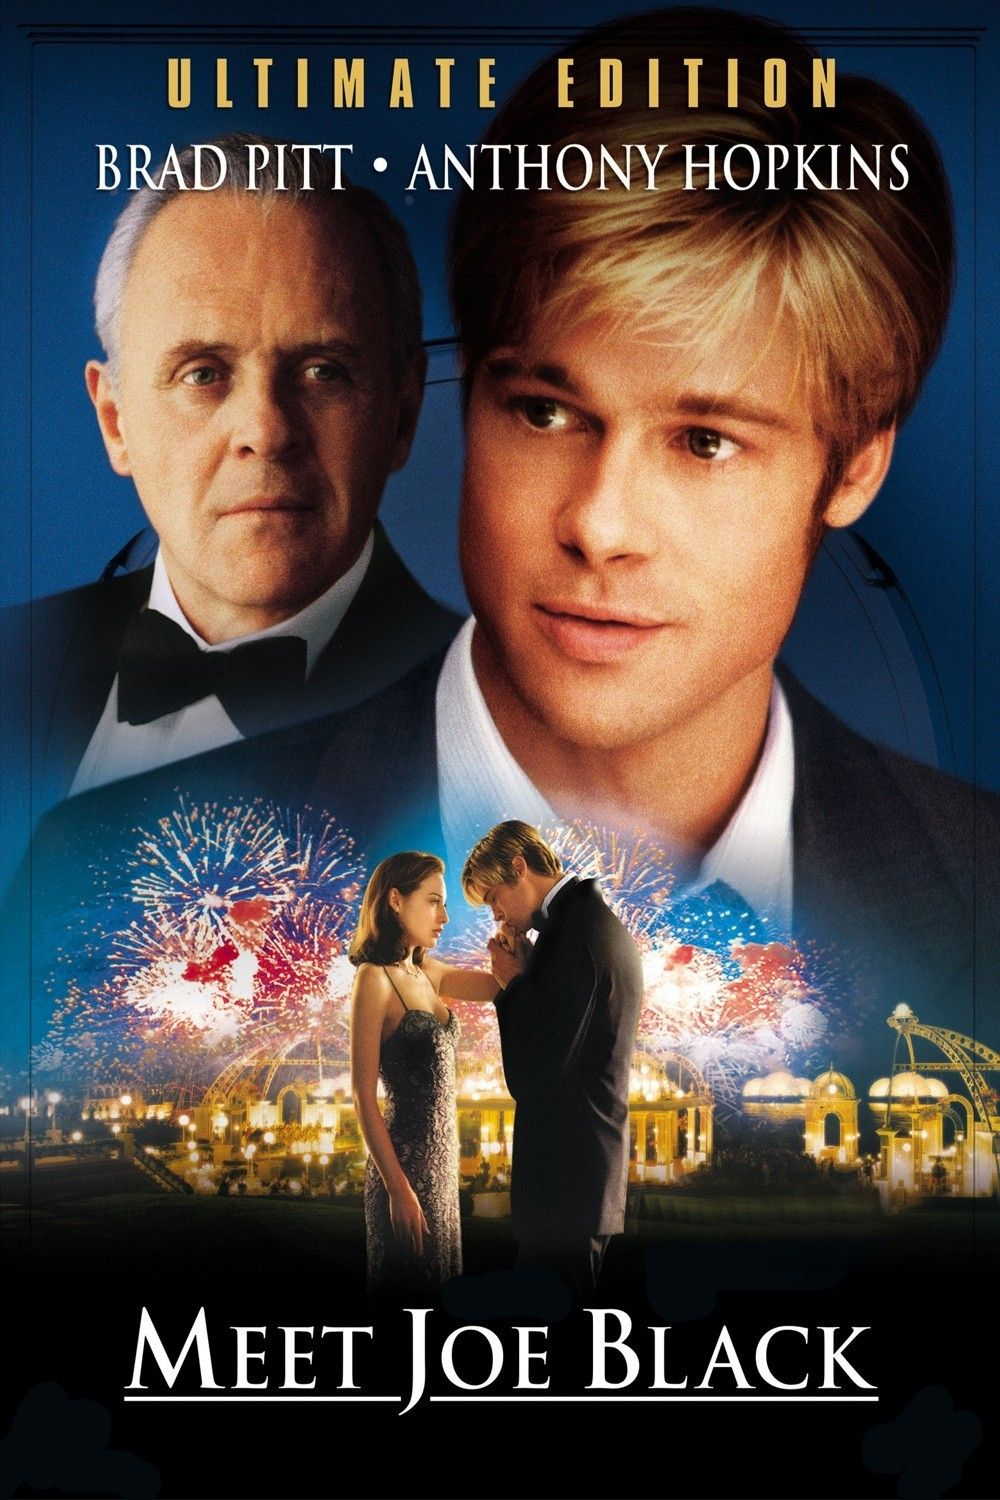 Music du film rencontre avec joe black